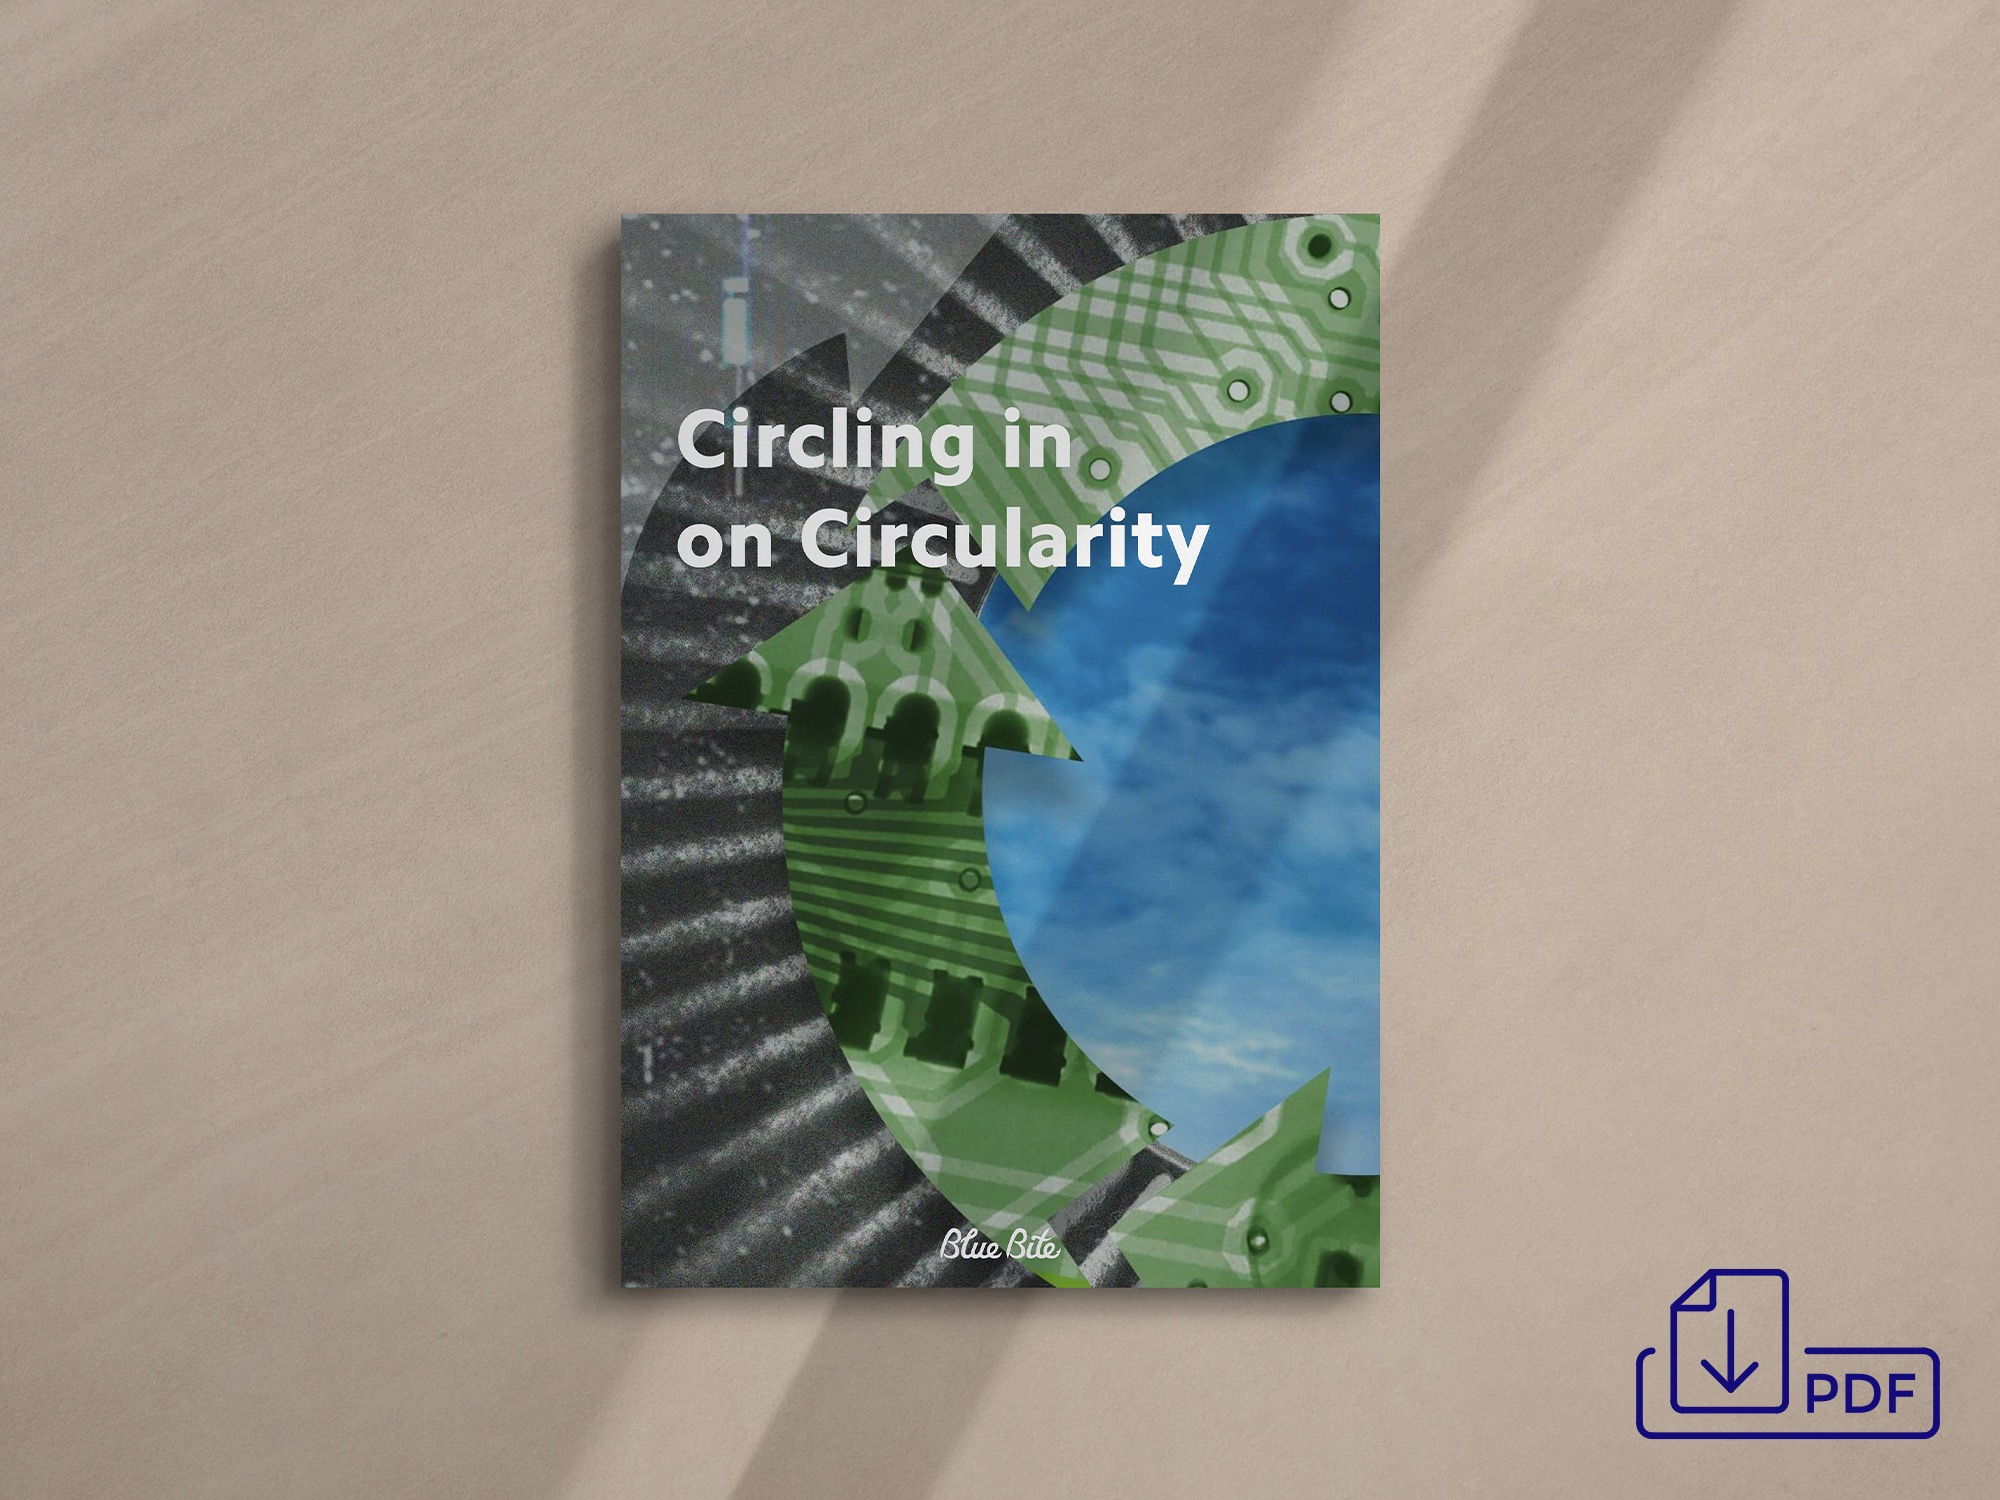 Get the Circling in on Circularity PDF